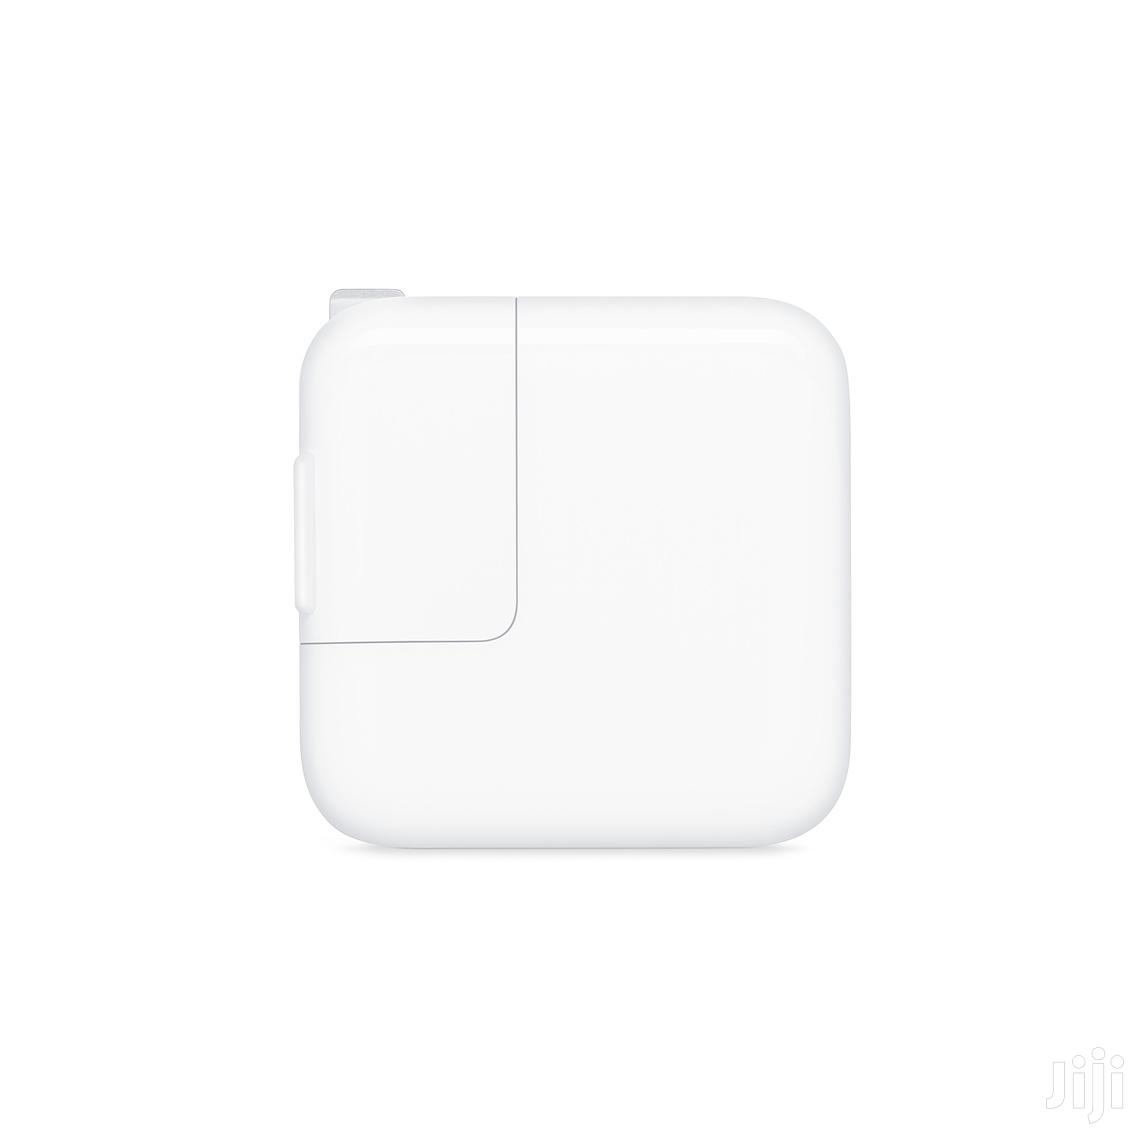 Original Apple USB Power Adapter 12W